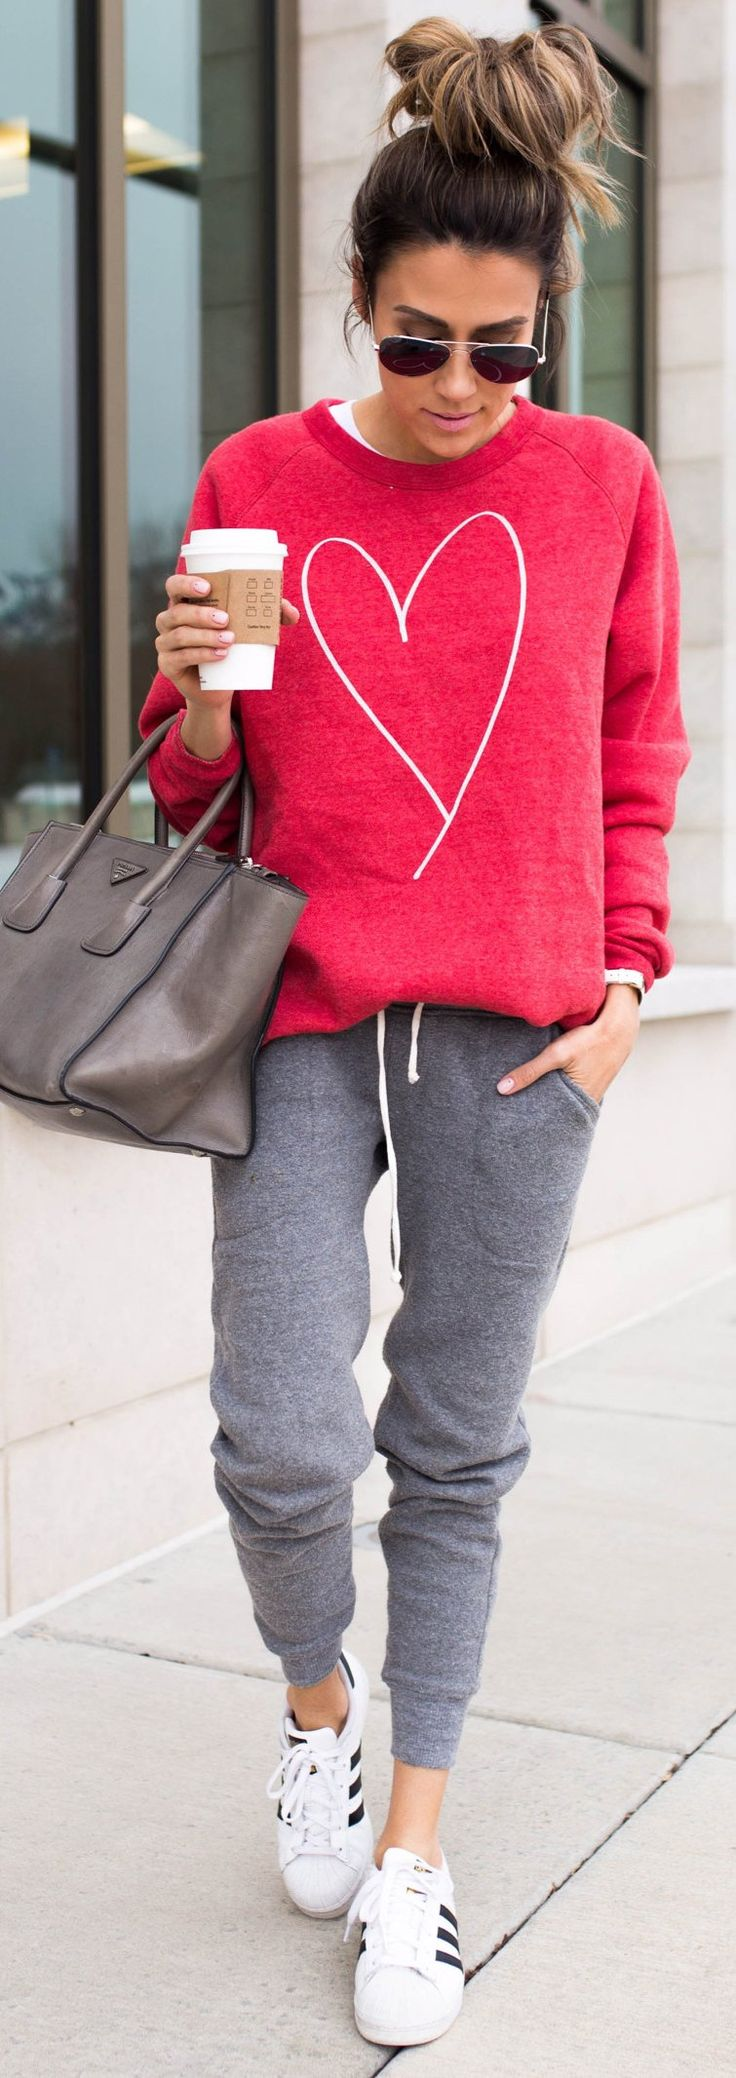 #spring #fashion / Red Heart Print Sweater / Grey Pants / White Adidas Sneakers https://bellanblue.com